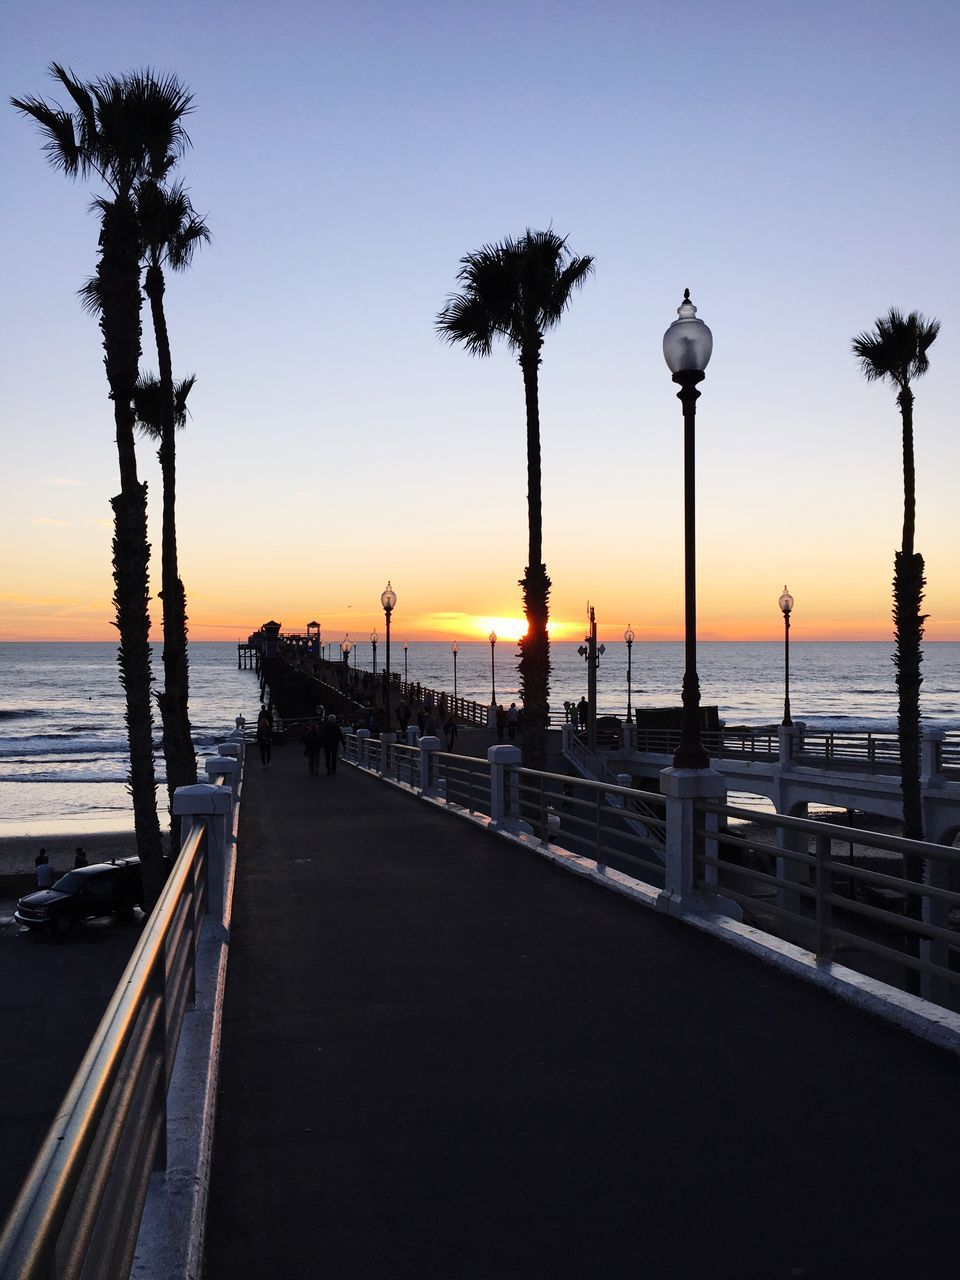 sunset, sea, silhouette, palm tree, water, sky, tree, scenics, nature, tranquility, tranquil scene, outdoors, beauty in nature, street light, clear sky, beach, horizon over water, no people, day